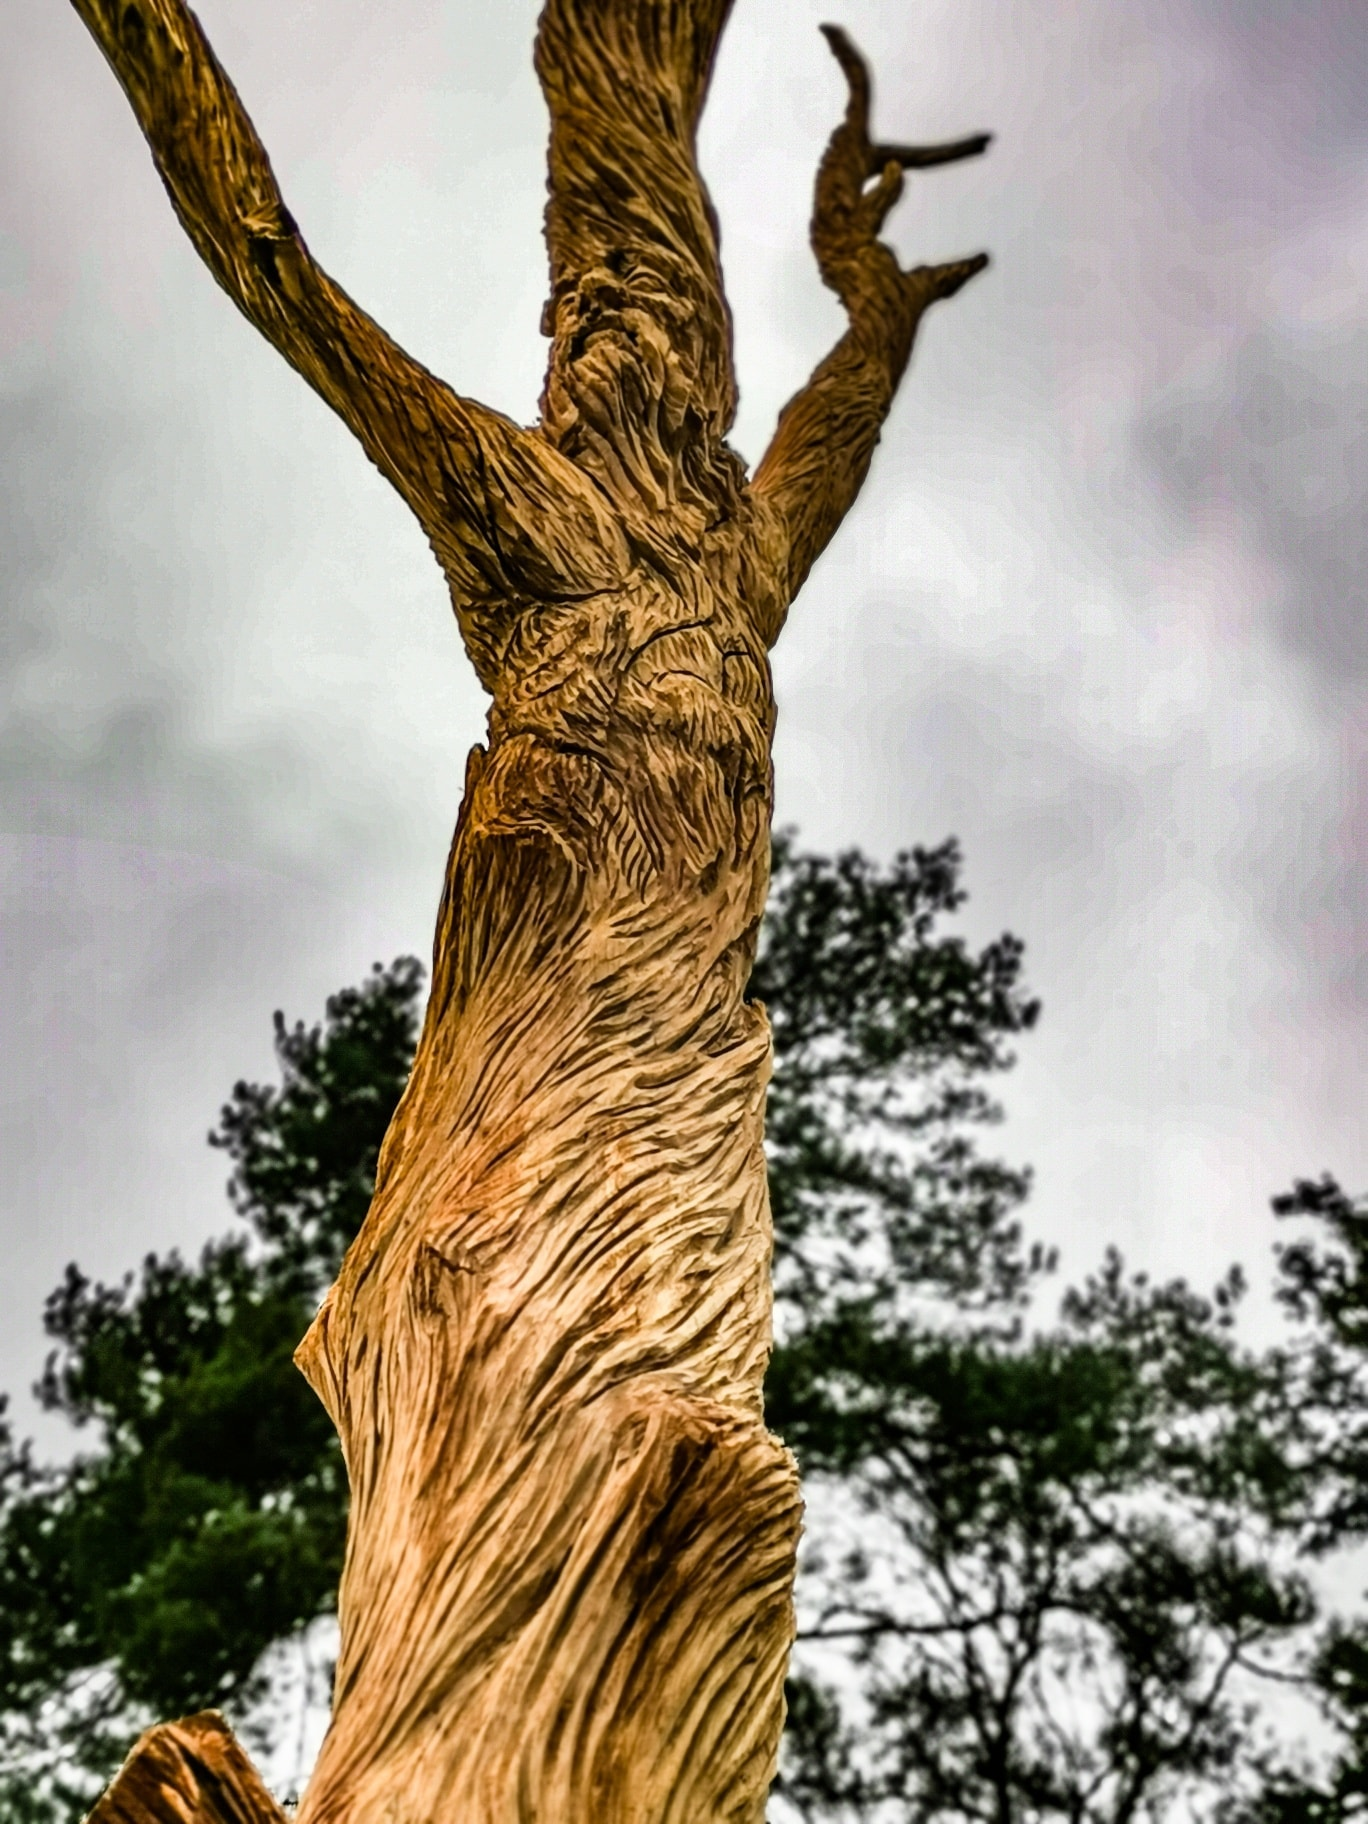 the old oak father sculpture by simon o'rourke